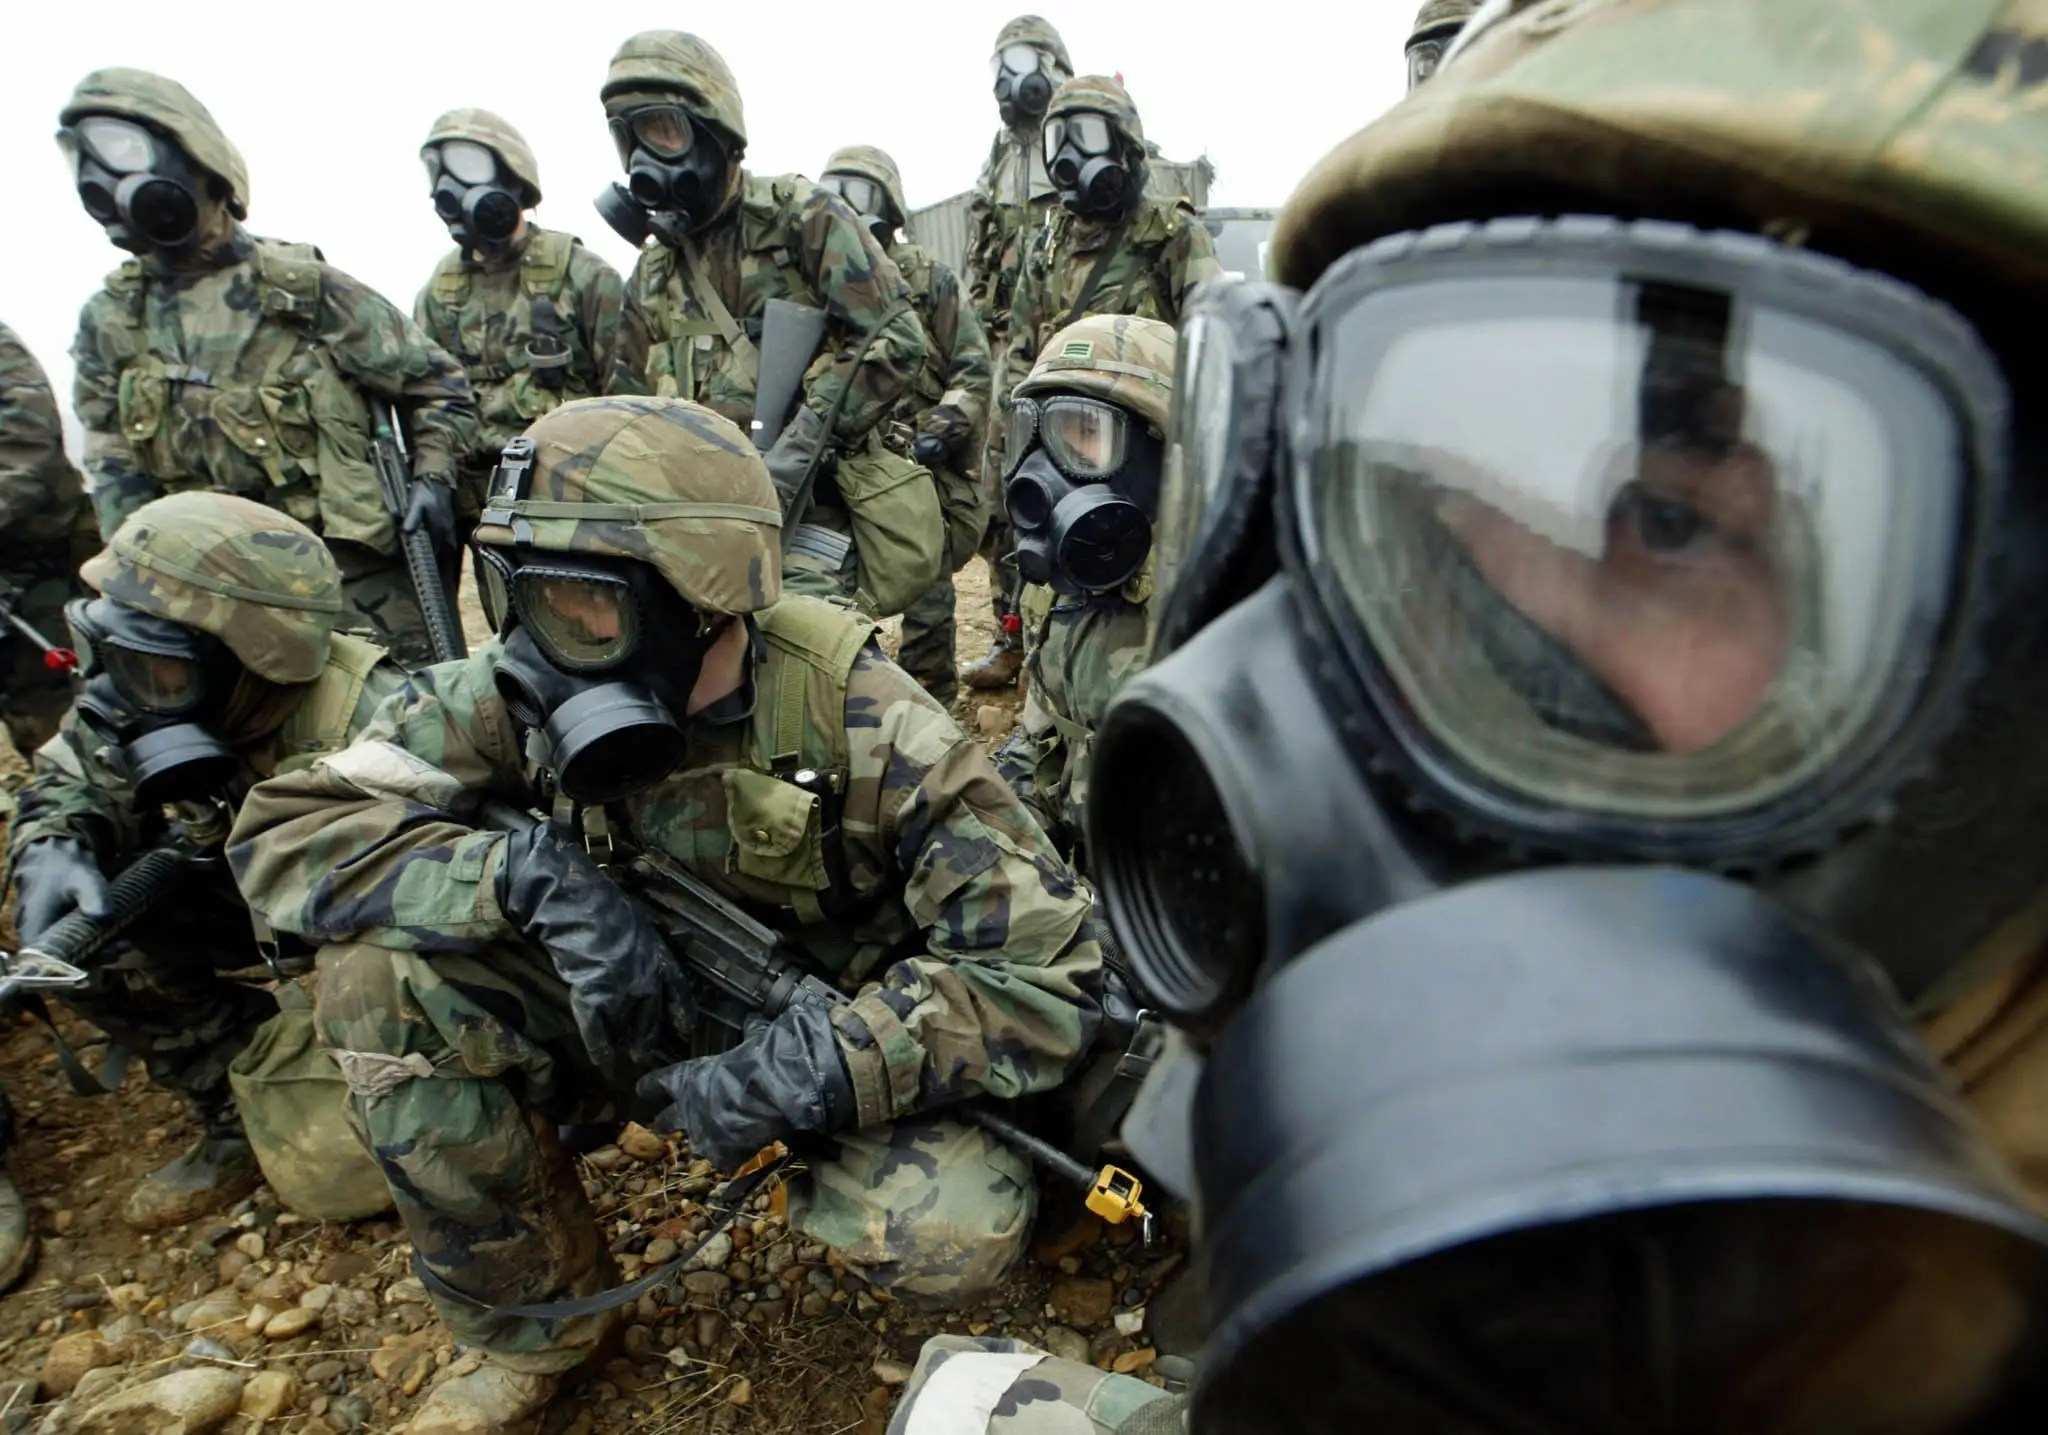 9. Biological Weapons